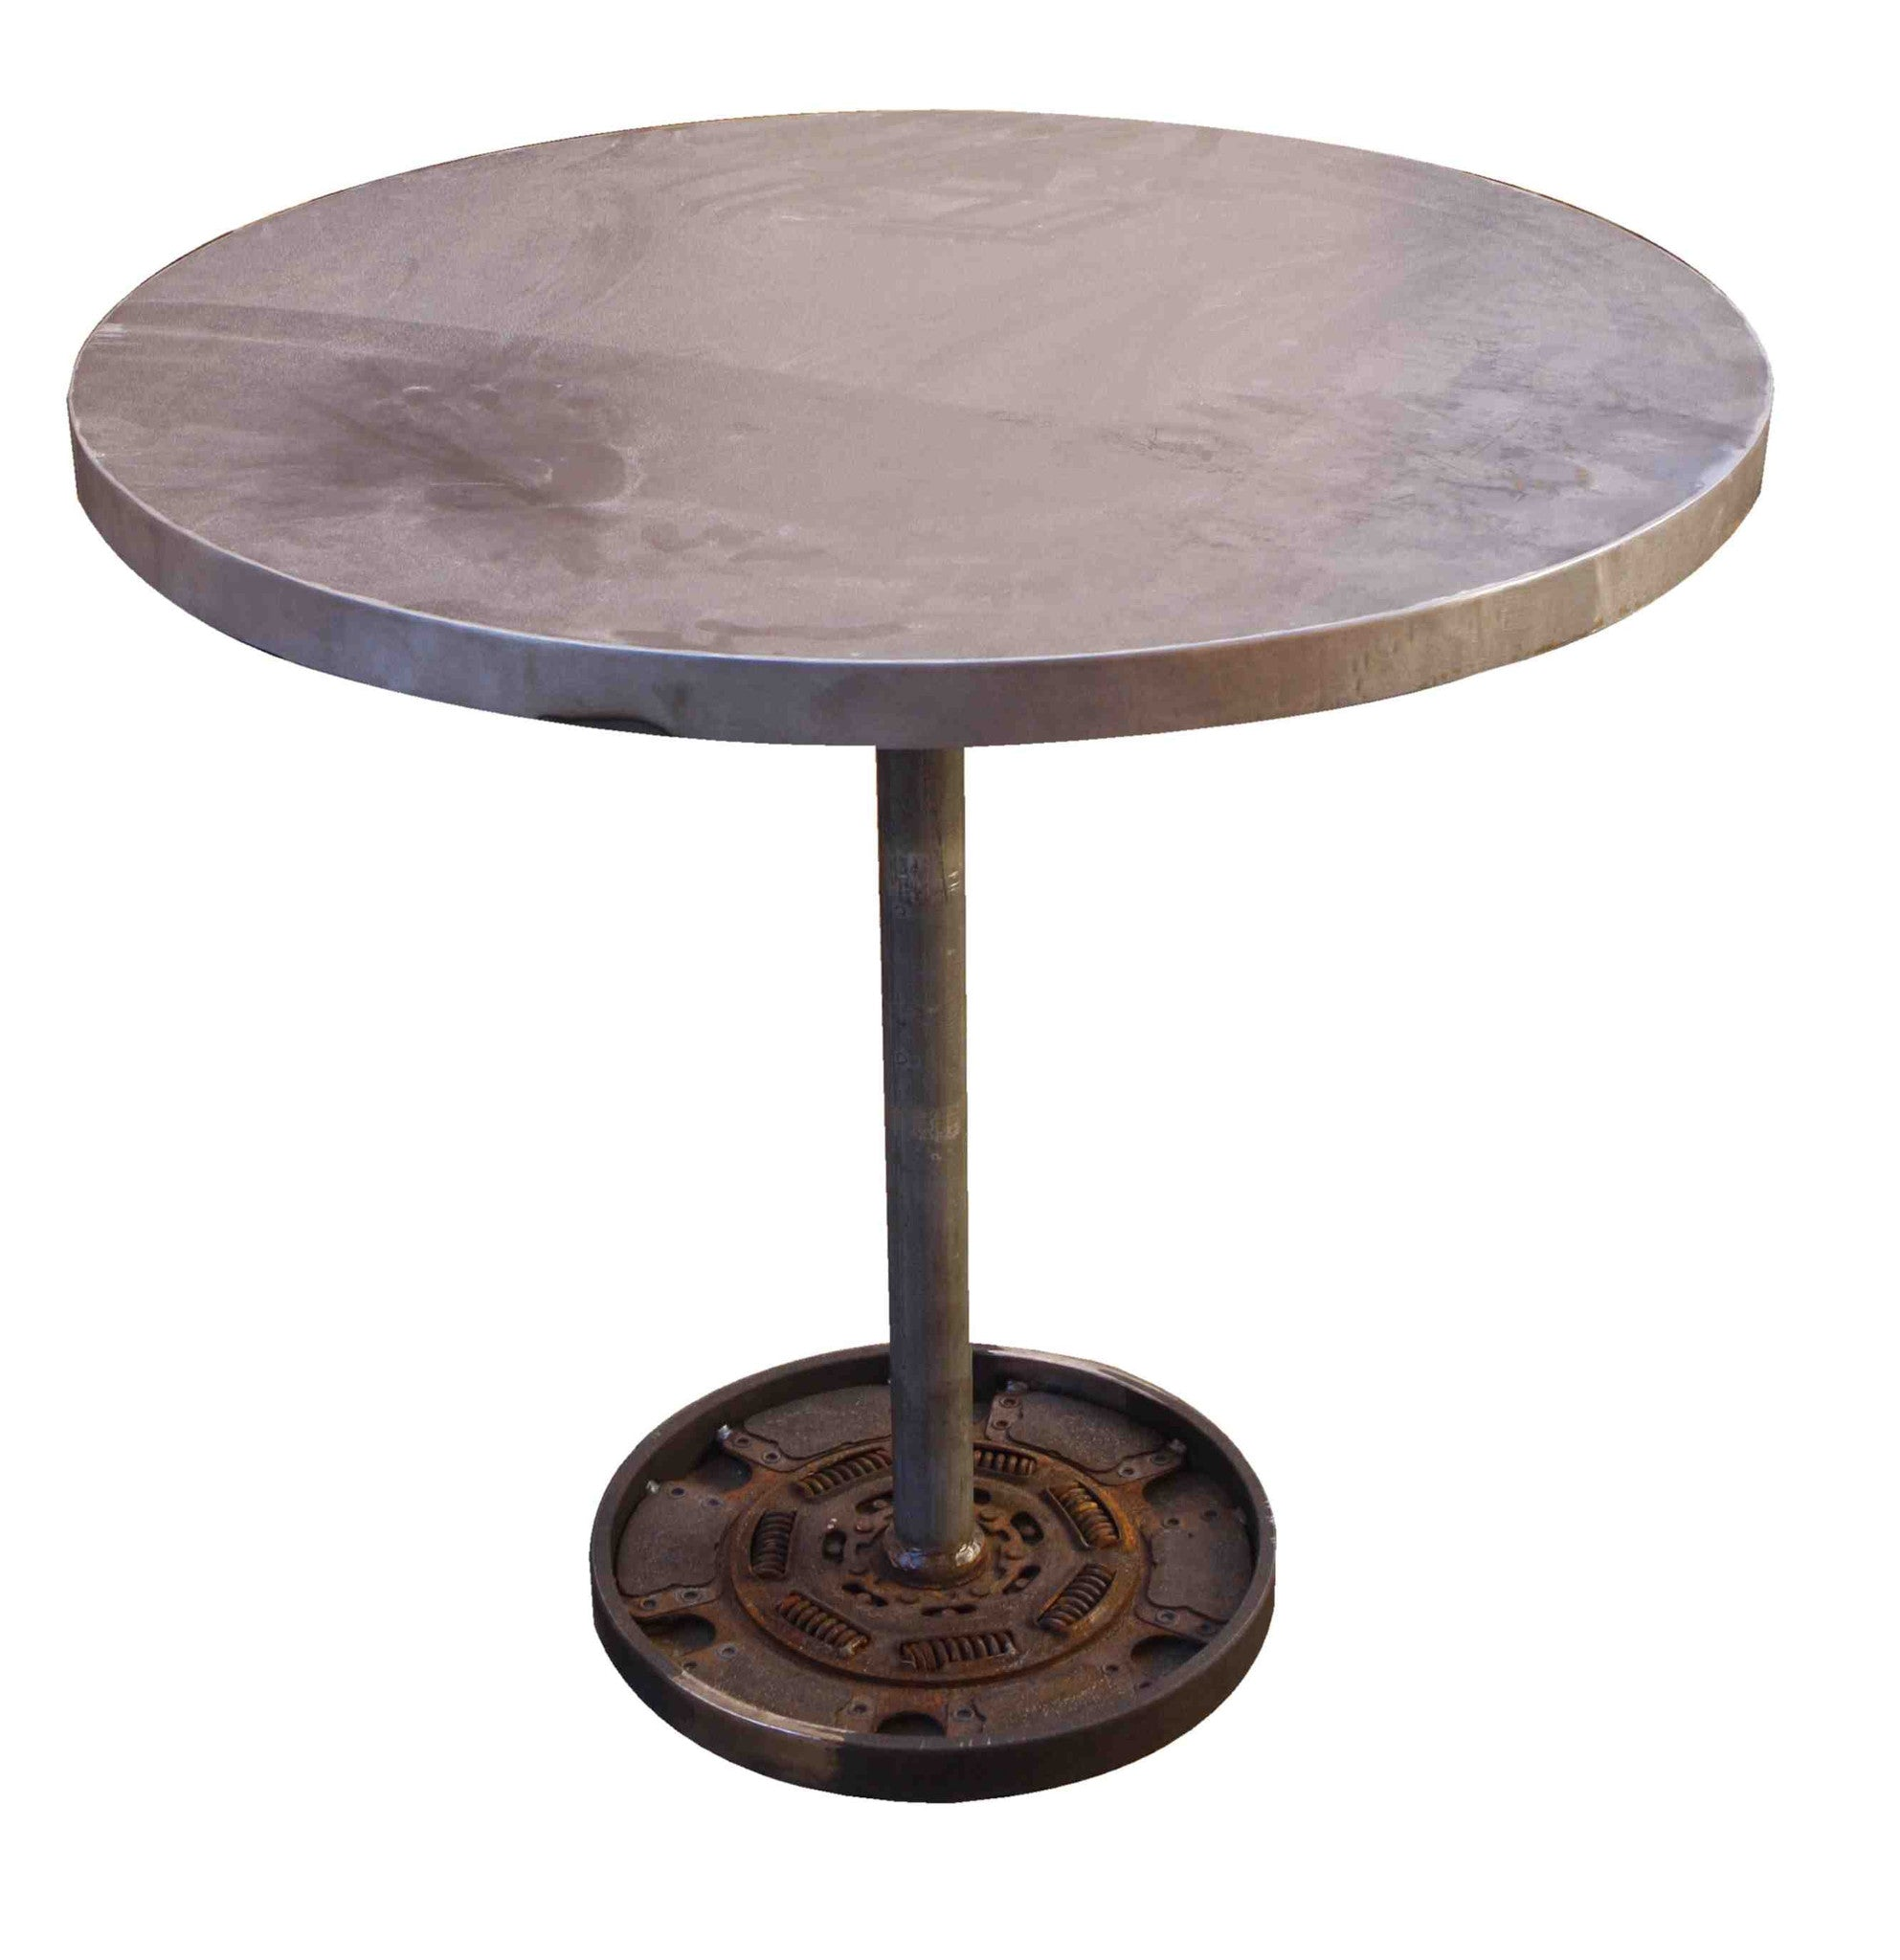 Worthington Industrial Round Metal Bistro Table Mortise Tenon